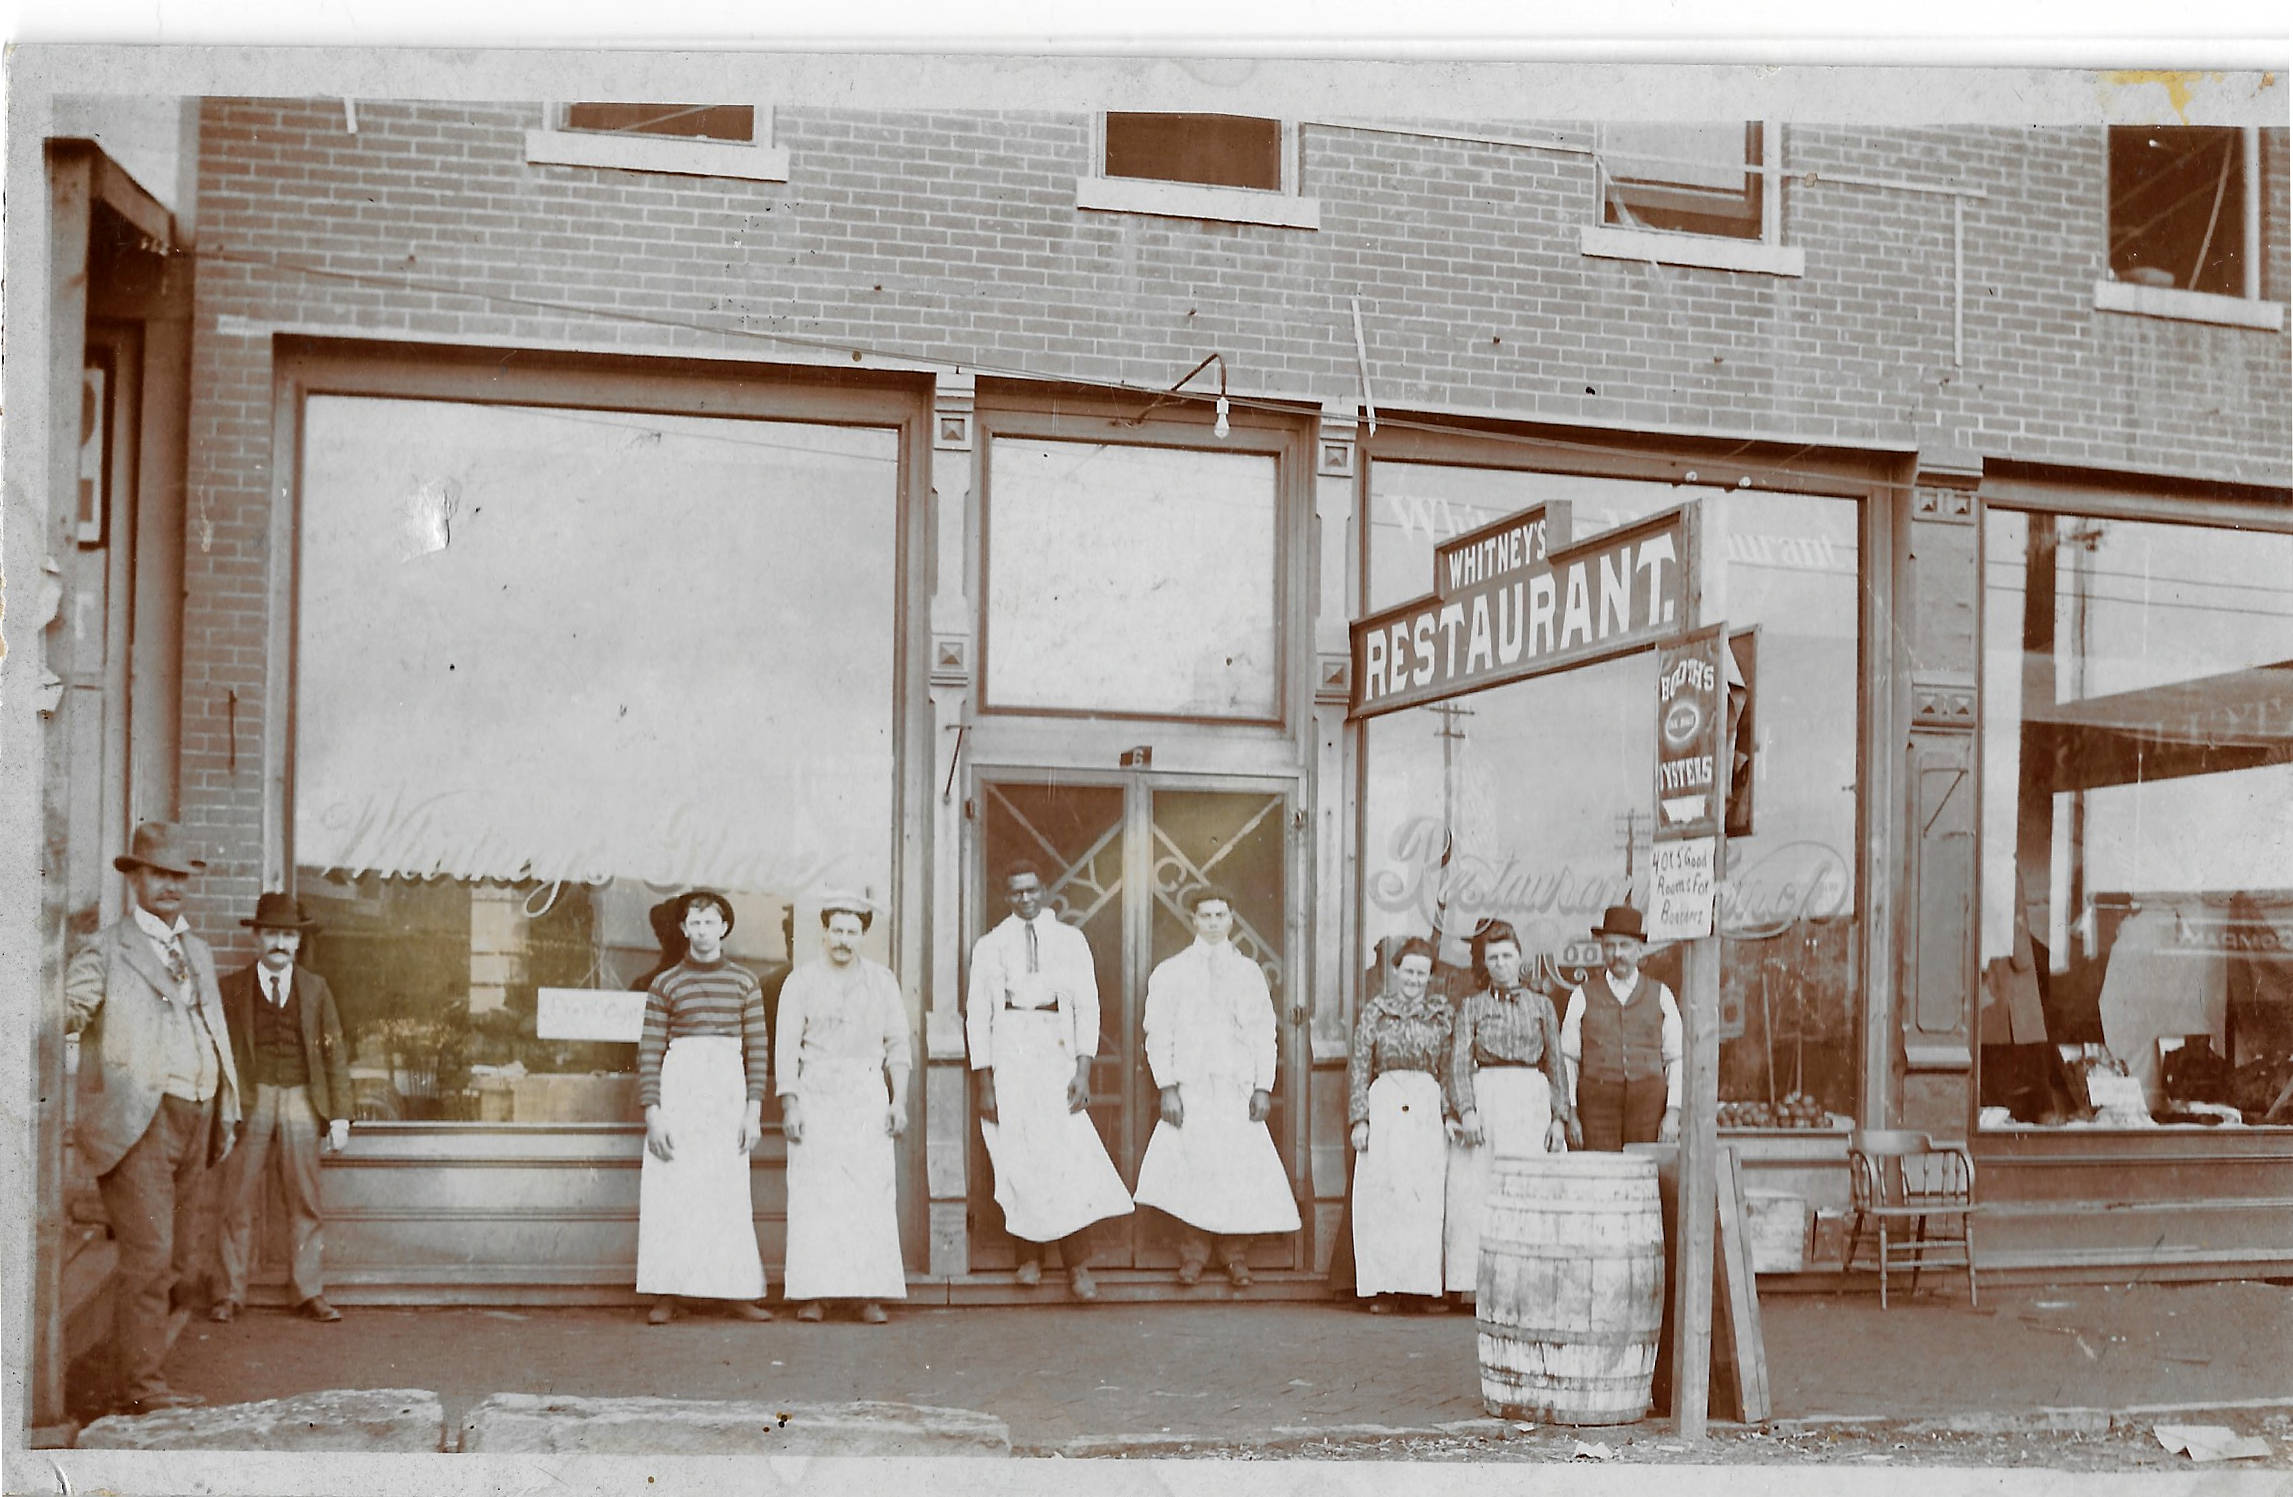 Photograph of Tom Buffington (far left), Chief of the Cherokees and Mayor of Vinita, along with restaurant employees, standing in front of Whitney's Restaurant, in downtown Vinita, Oklahoma, circa 1910